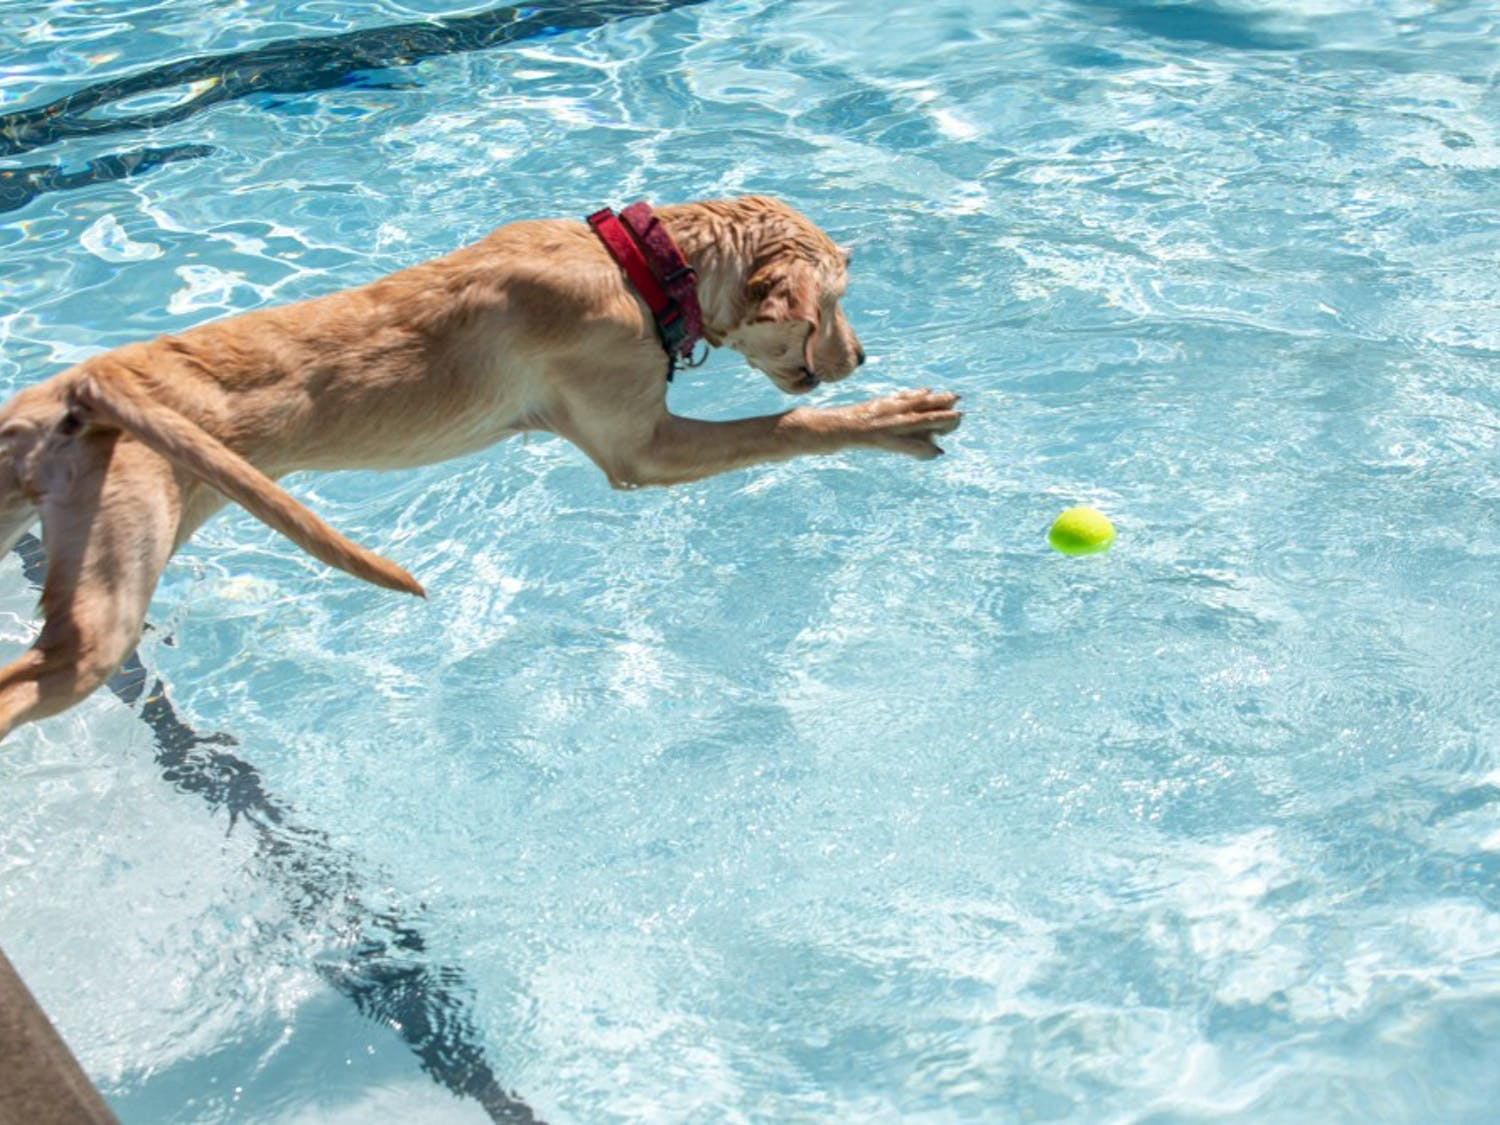 Brie jumps into the pool at Orange County's 15th Annual Dog Swim at Heritage Hills Pool in Chapel Hill, NC on Sunday September 22, 2019.